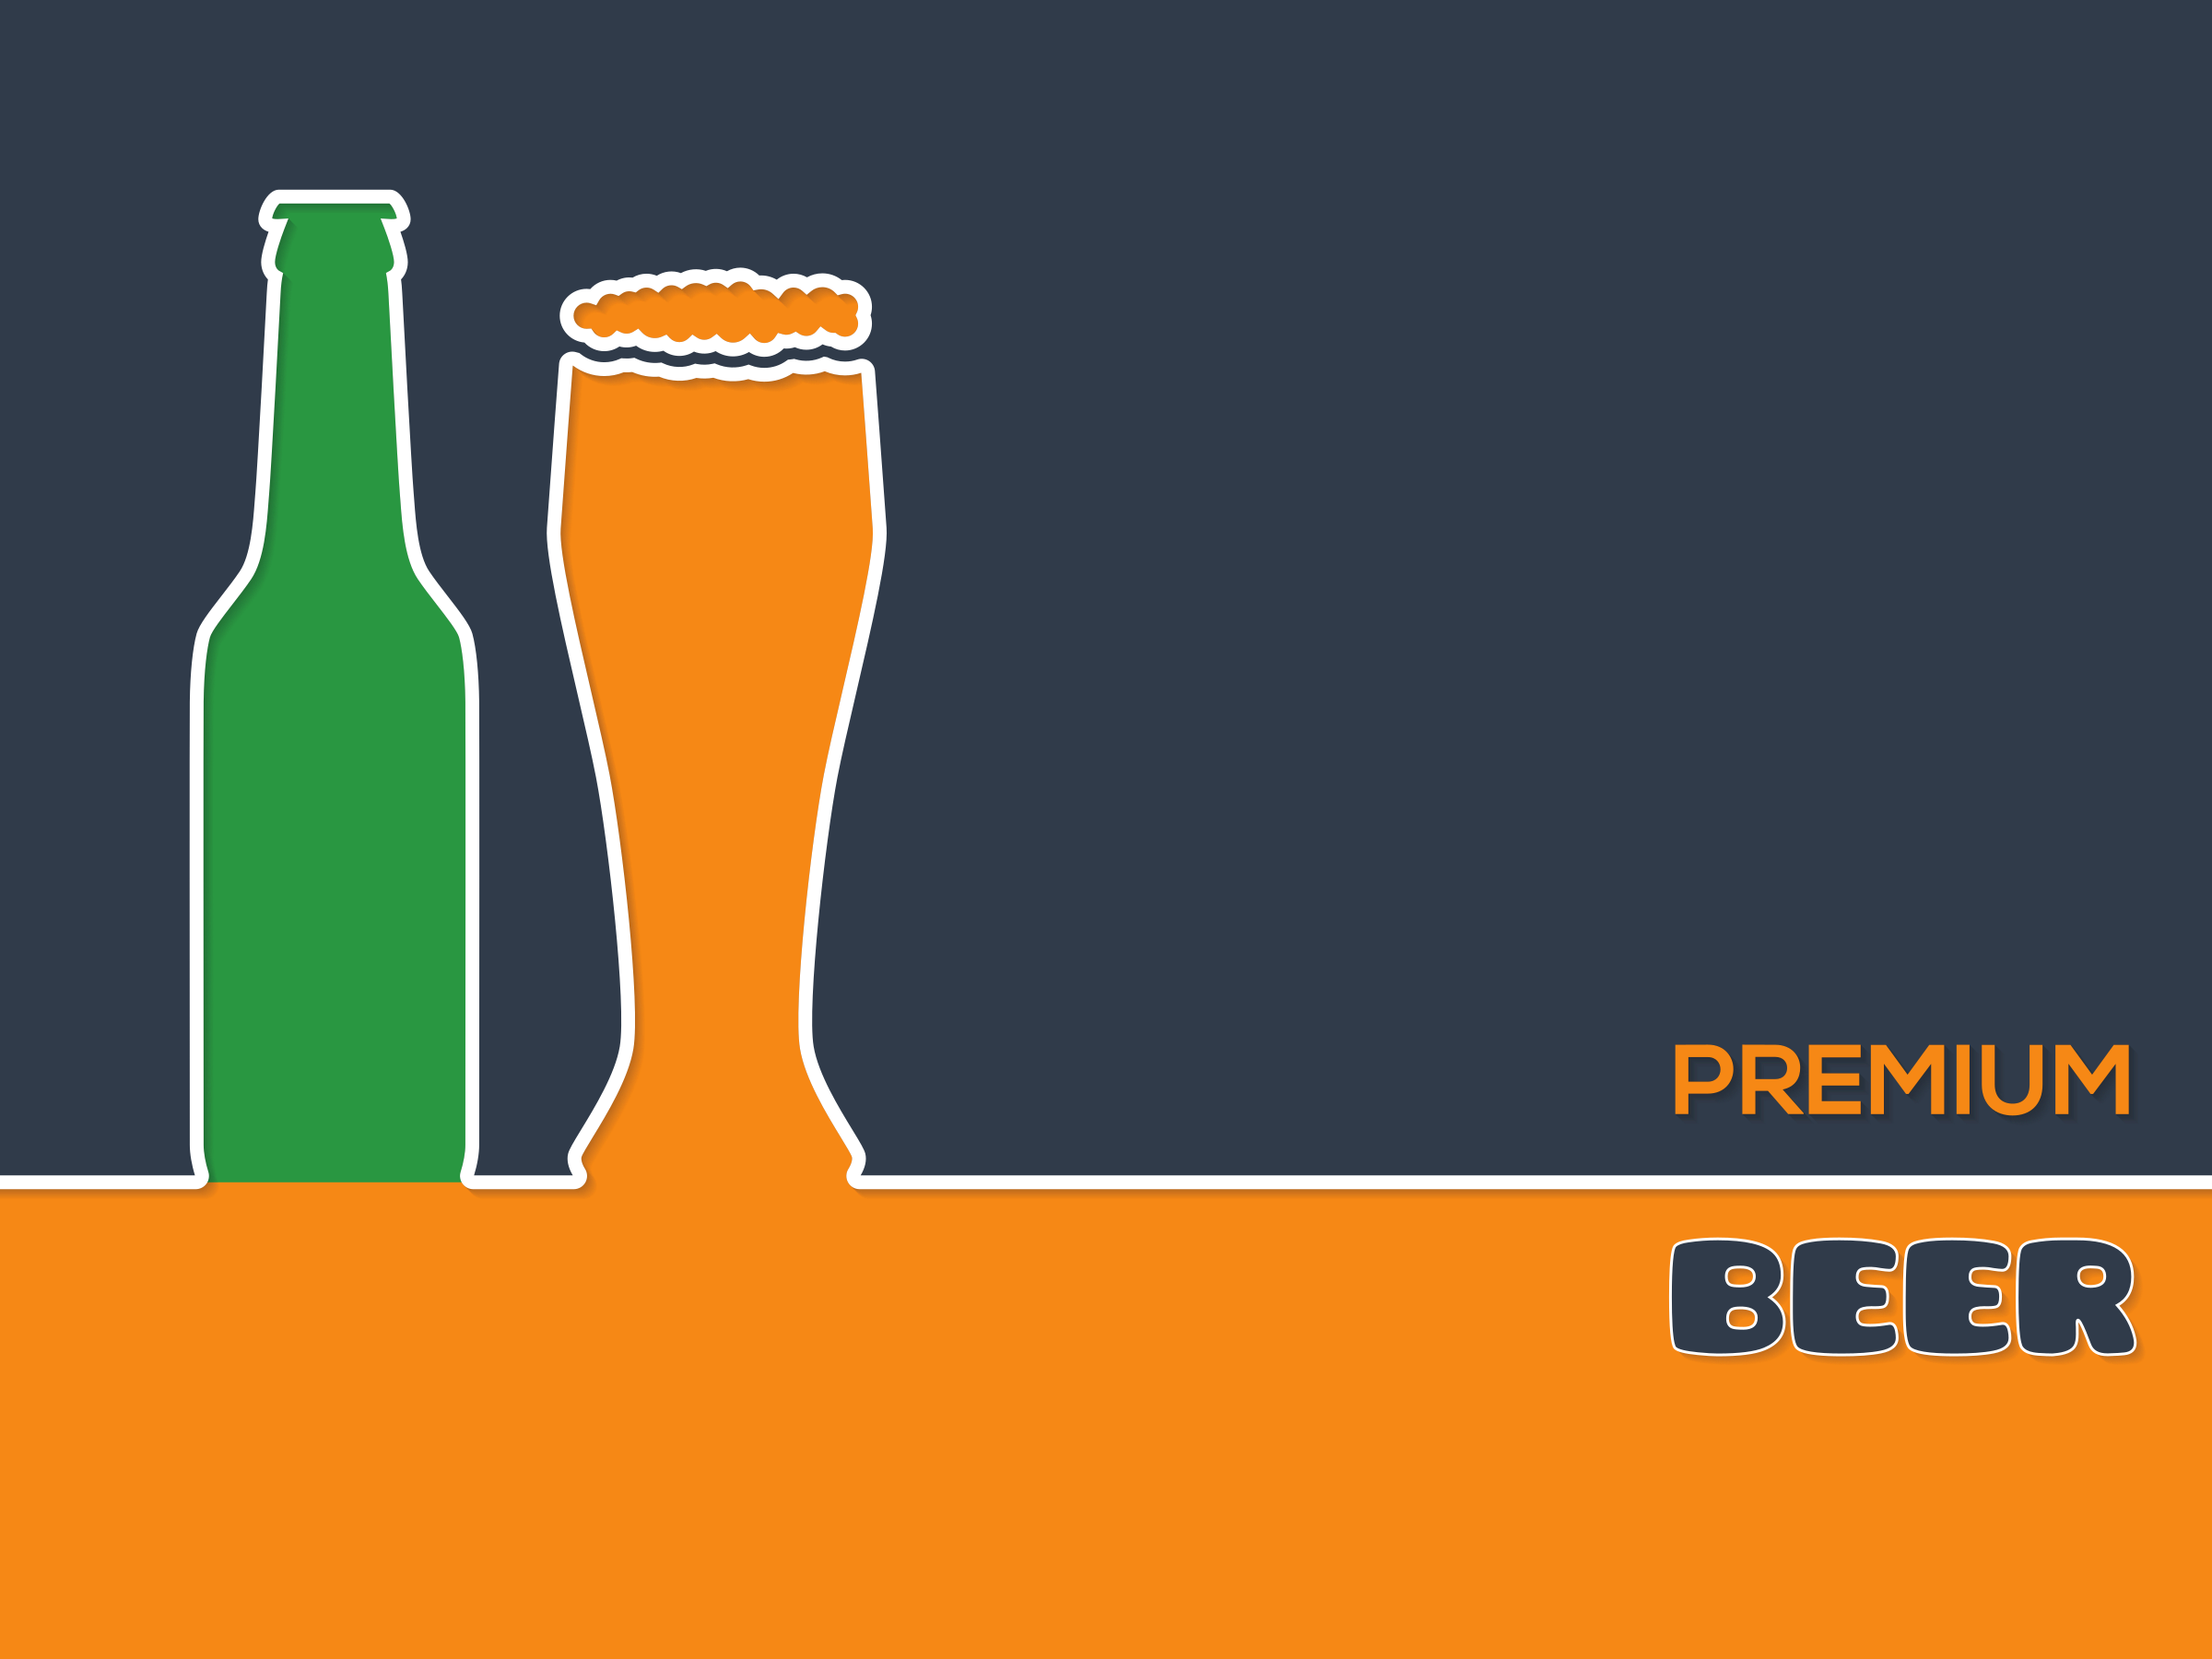 Premium beer vector background by liftarn